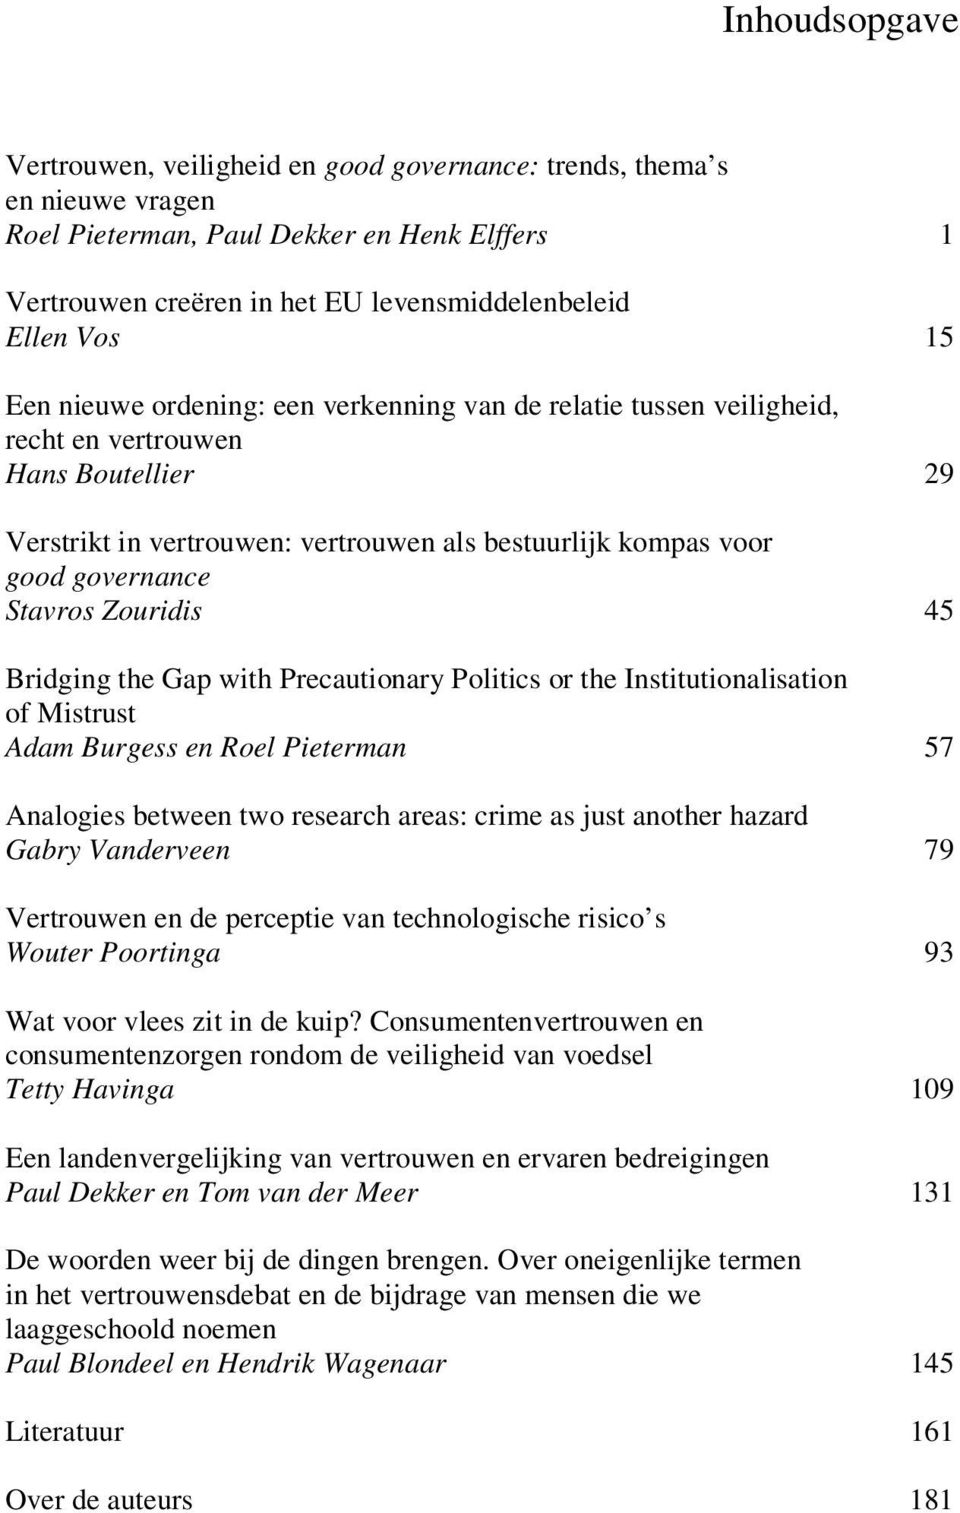 Zouridis 45 Bridging the Gap with Precautionary Politics or the Institutionalisation of Mistrust Adam Burgess en Roel Pieterman 57 Analogies between two research areas: crime as just another hazard